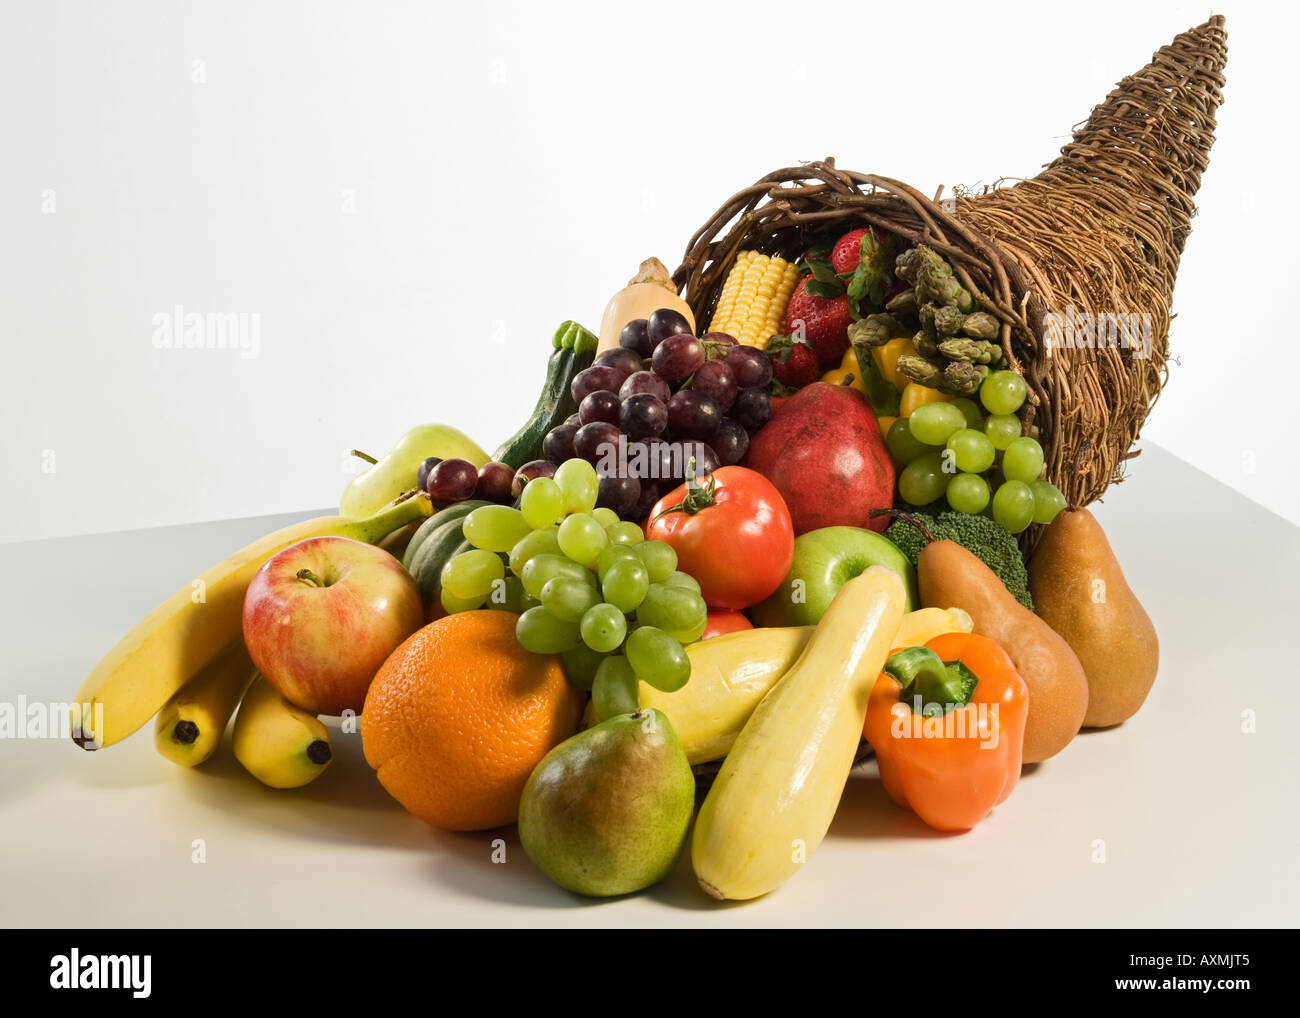 Fruits and vegetables in cornucopia basket - Stock Image